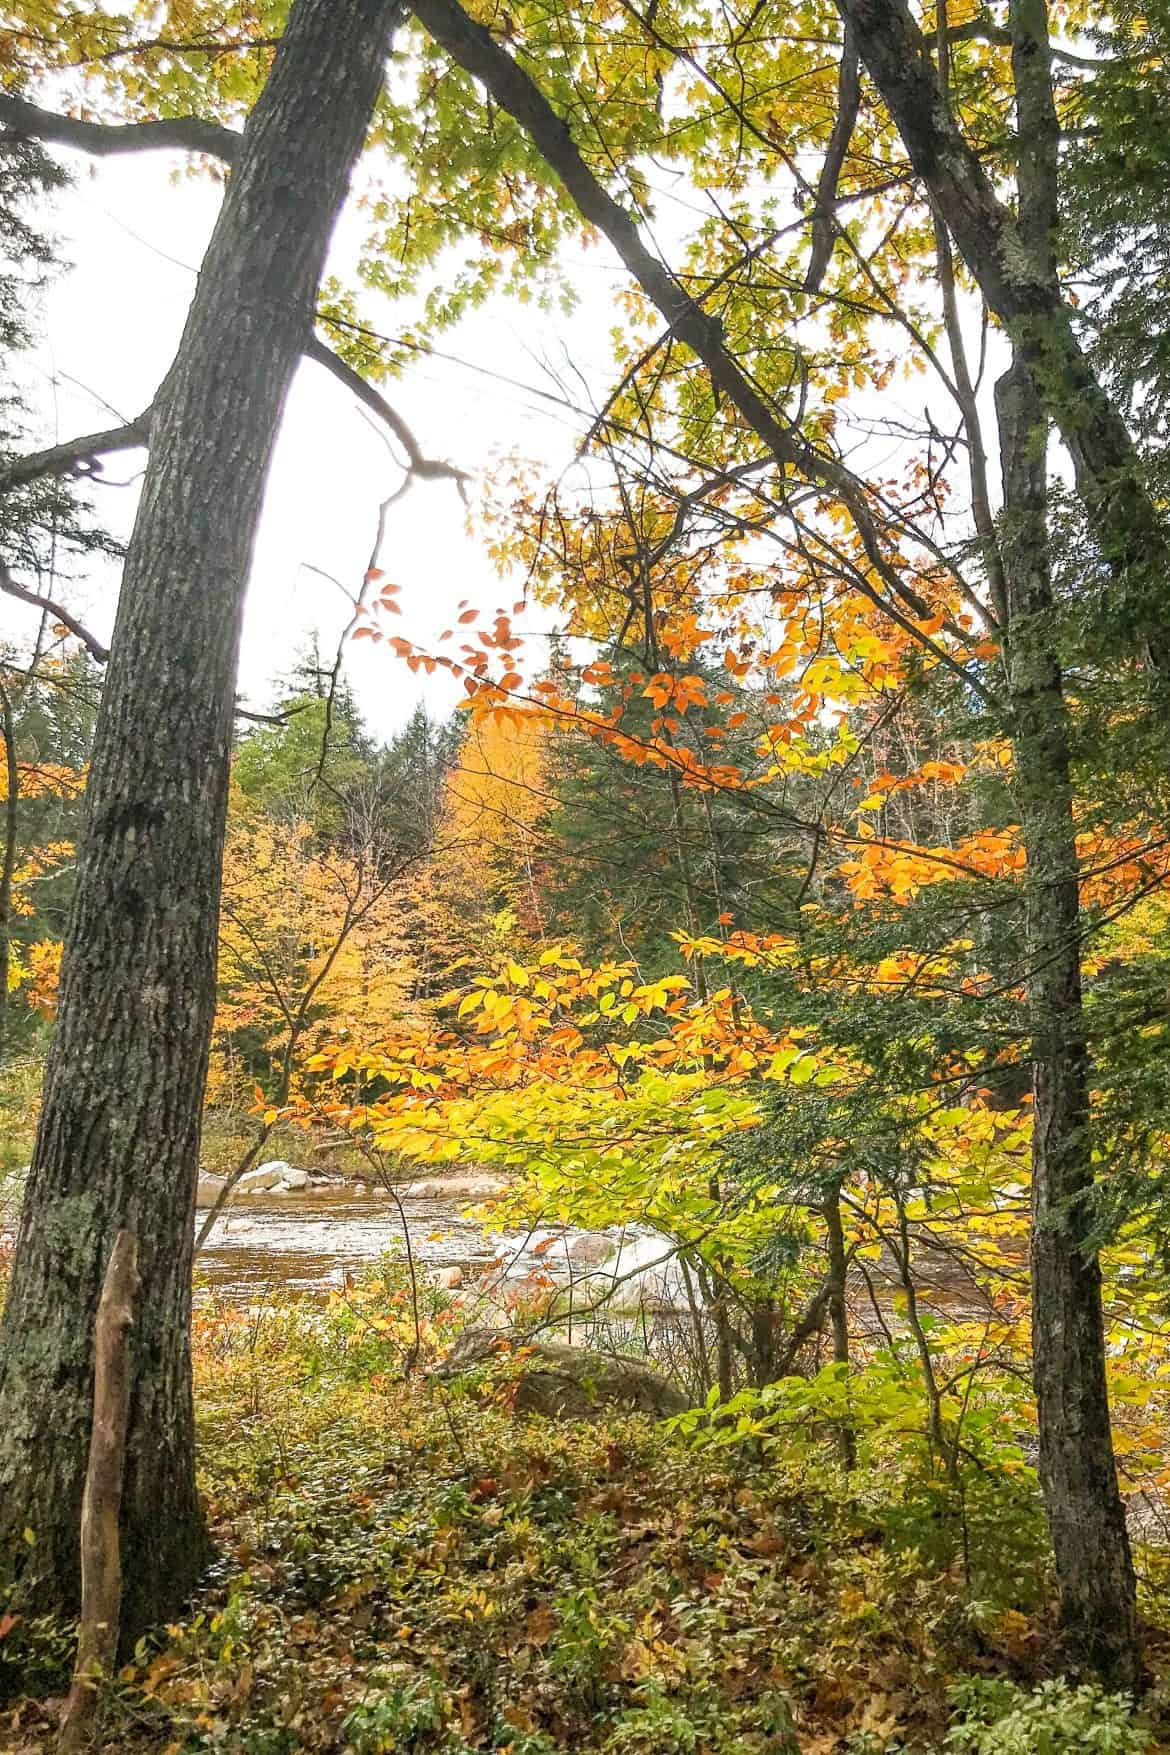 A Drive Through the White Mountain National Forest | The Kancamagus Highway #newhampshire #newengland #newenglandtravel #autumn #kancamagushighway #whitemountains #travel #roadtrip